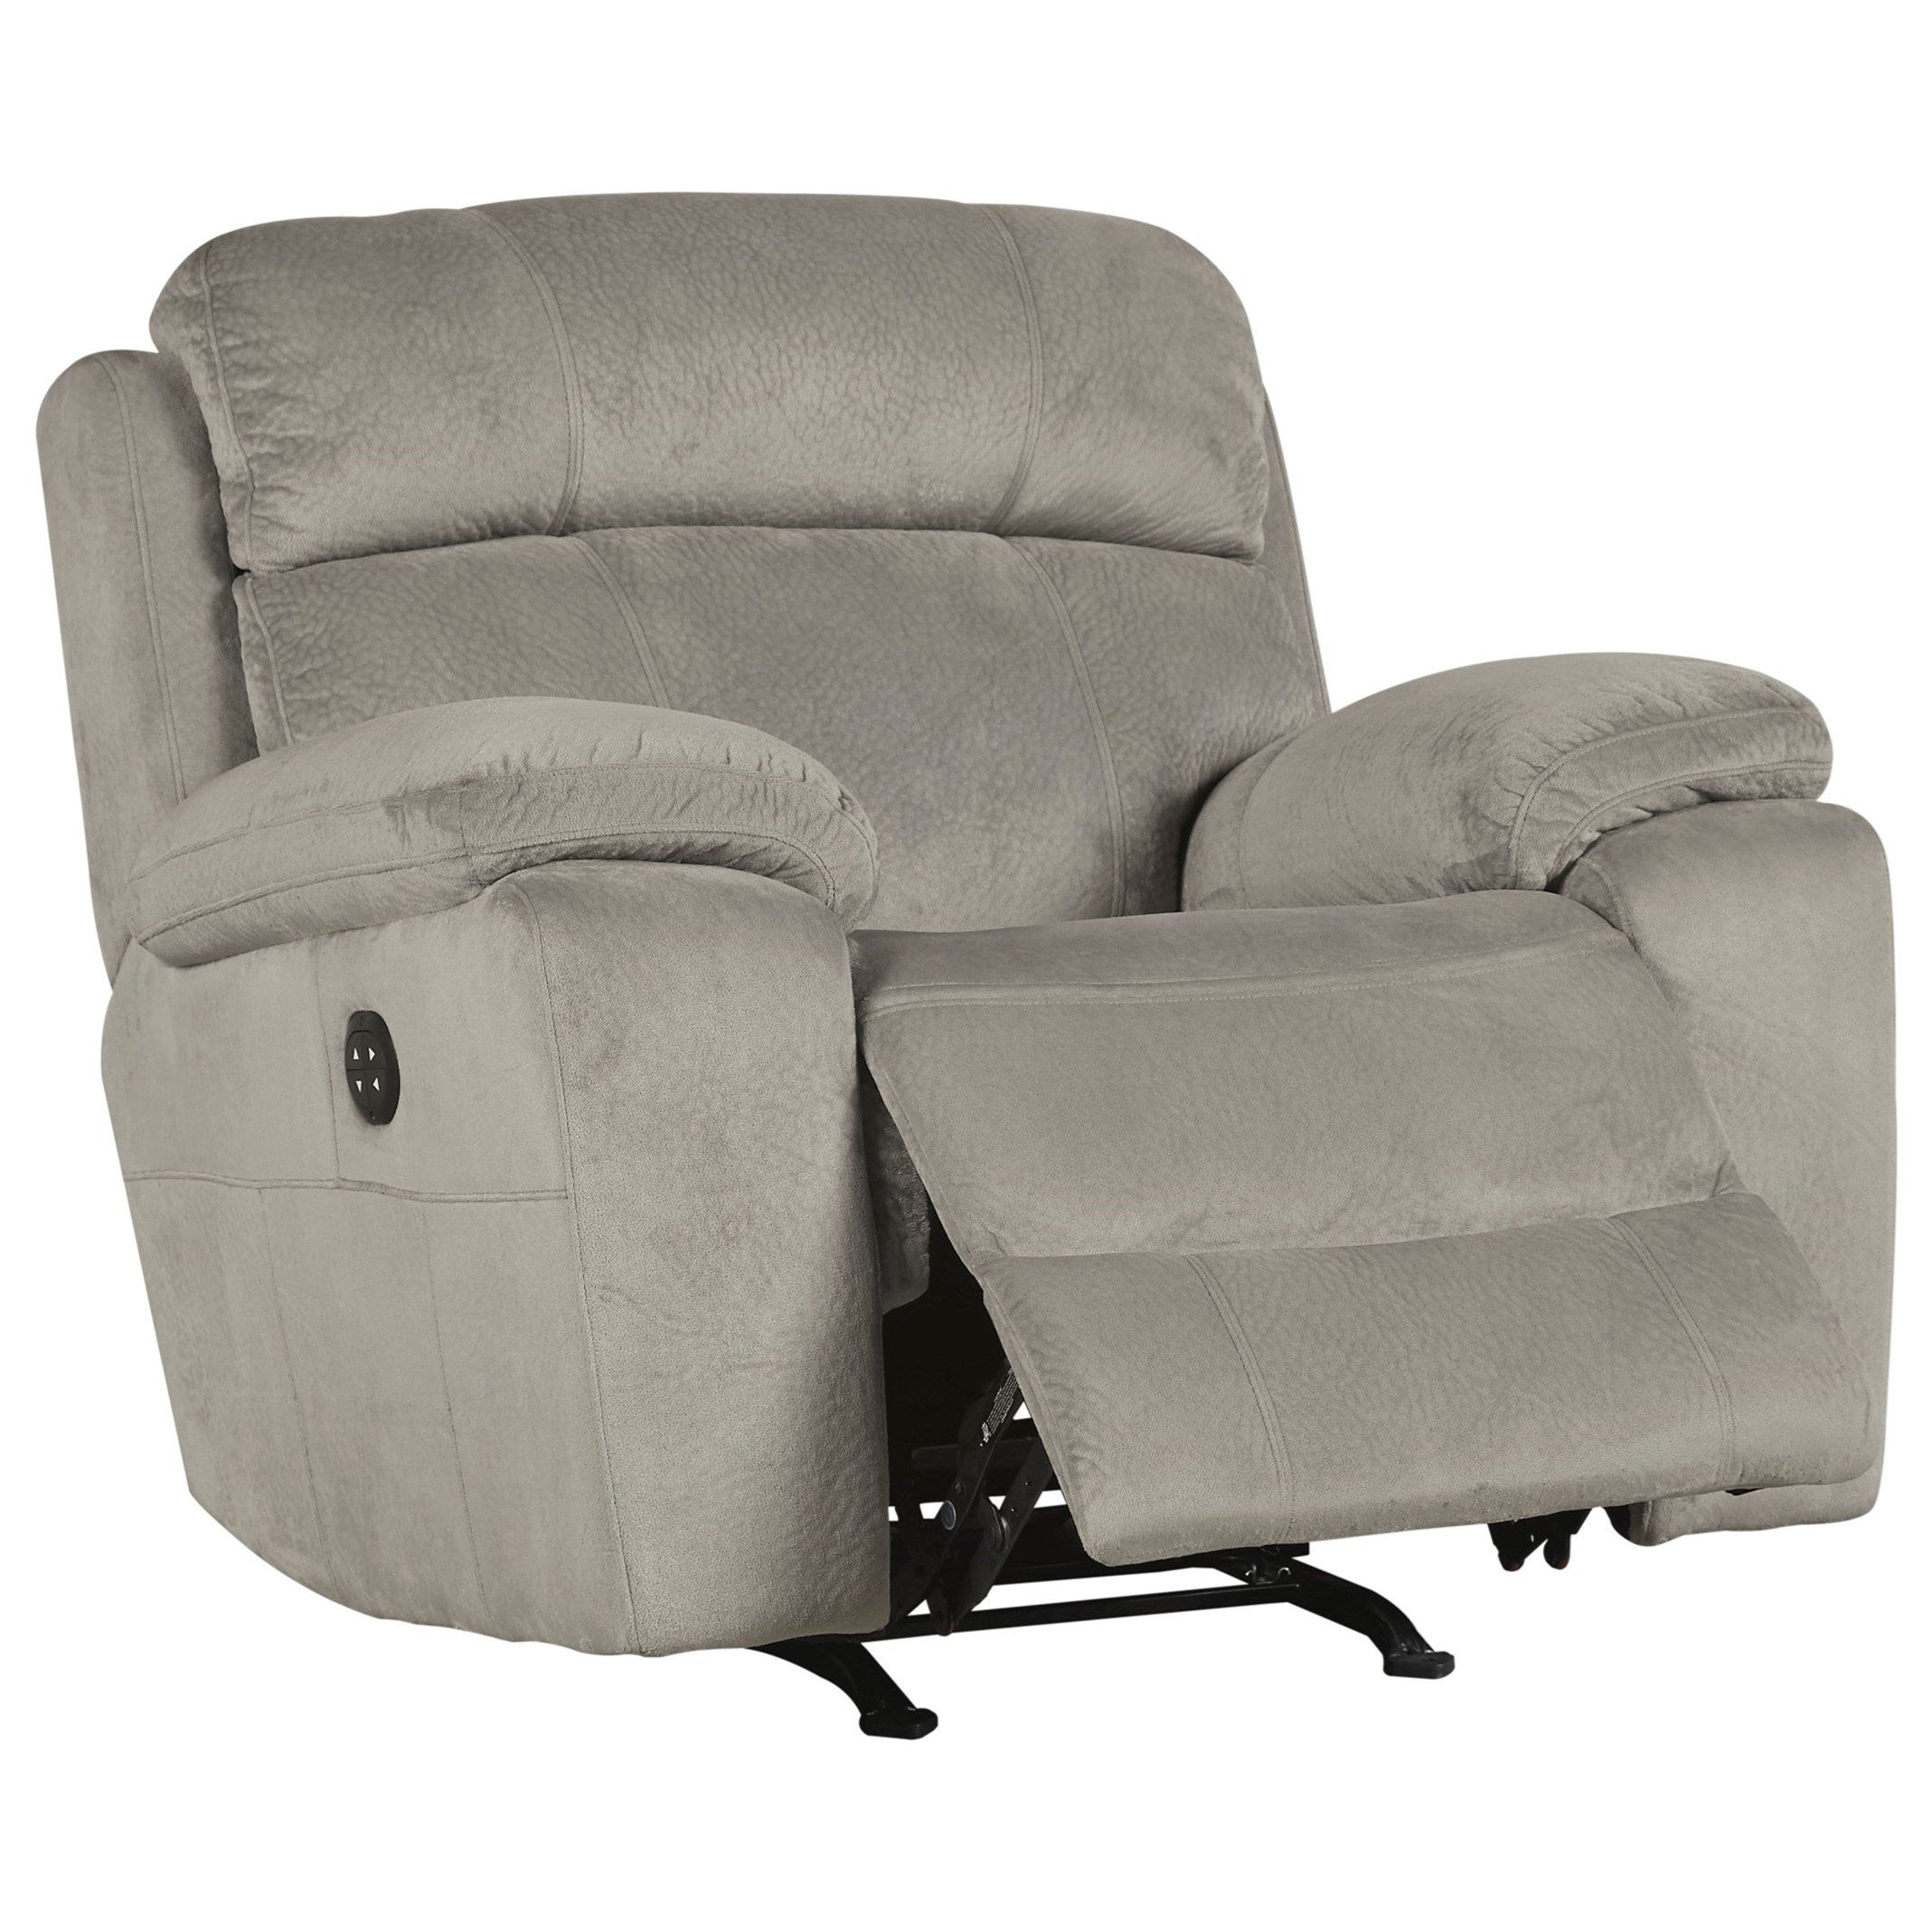 Uhland Power Recliner with Adjustable Headrest by